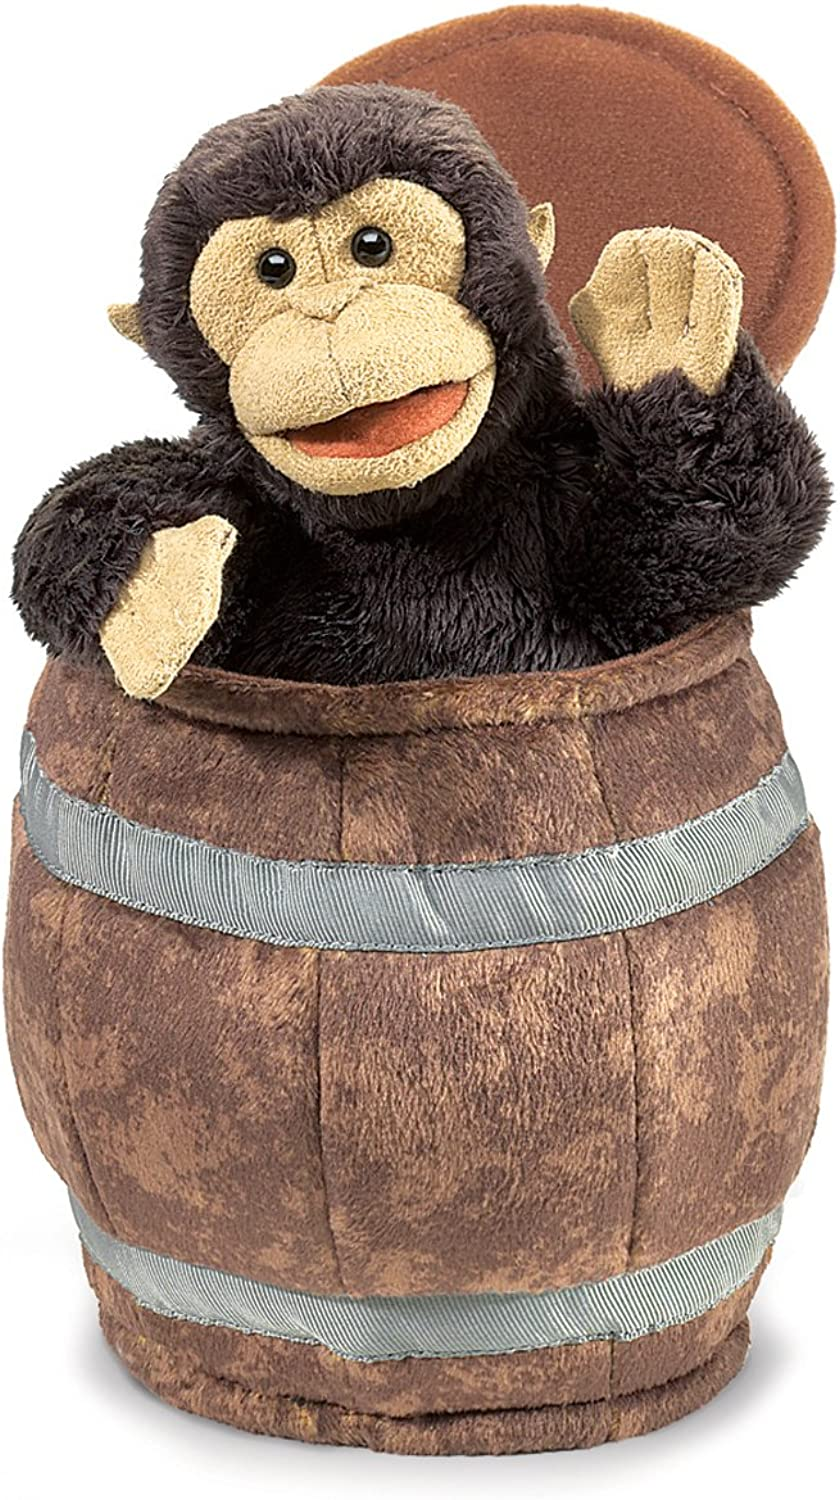 Folkmanis Puppets Monkey in A Barrel Hand Puppet, Brown